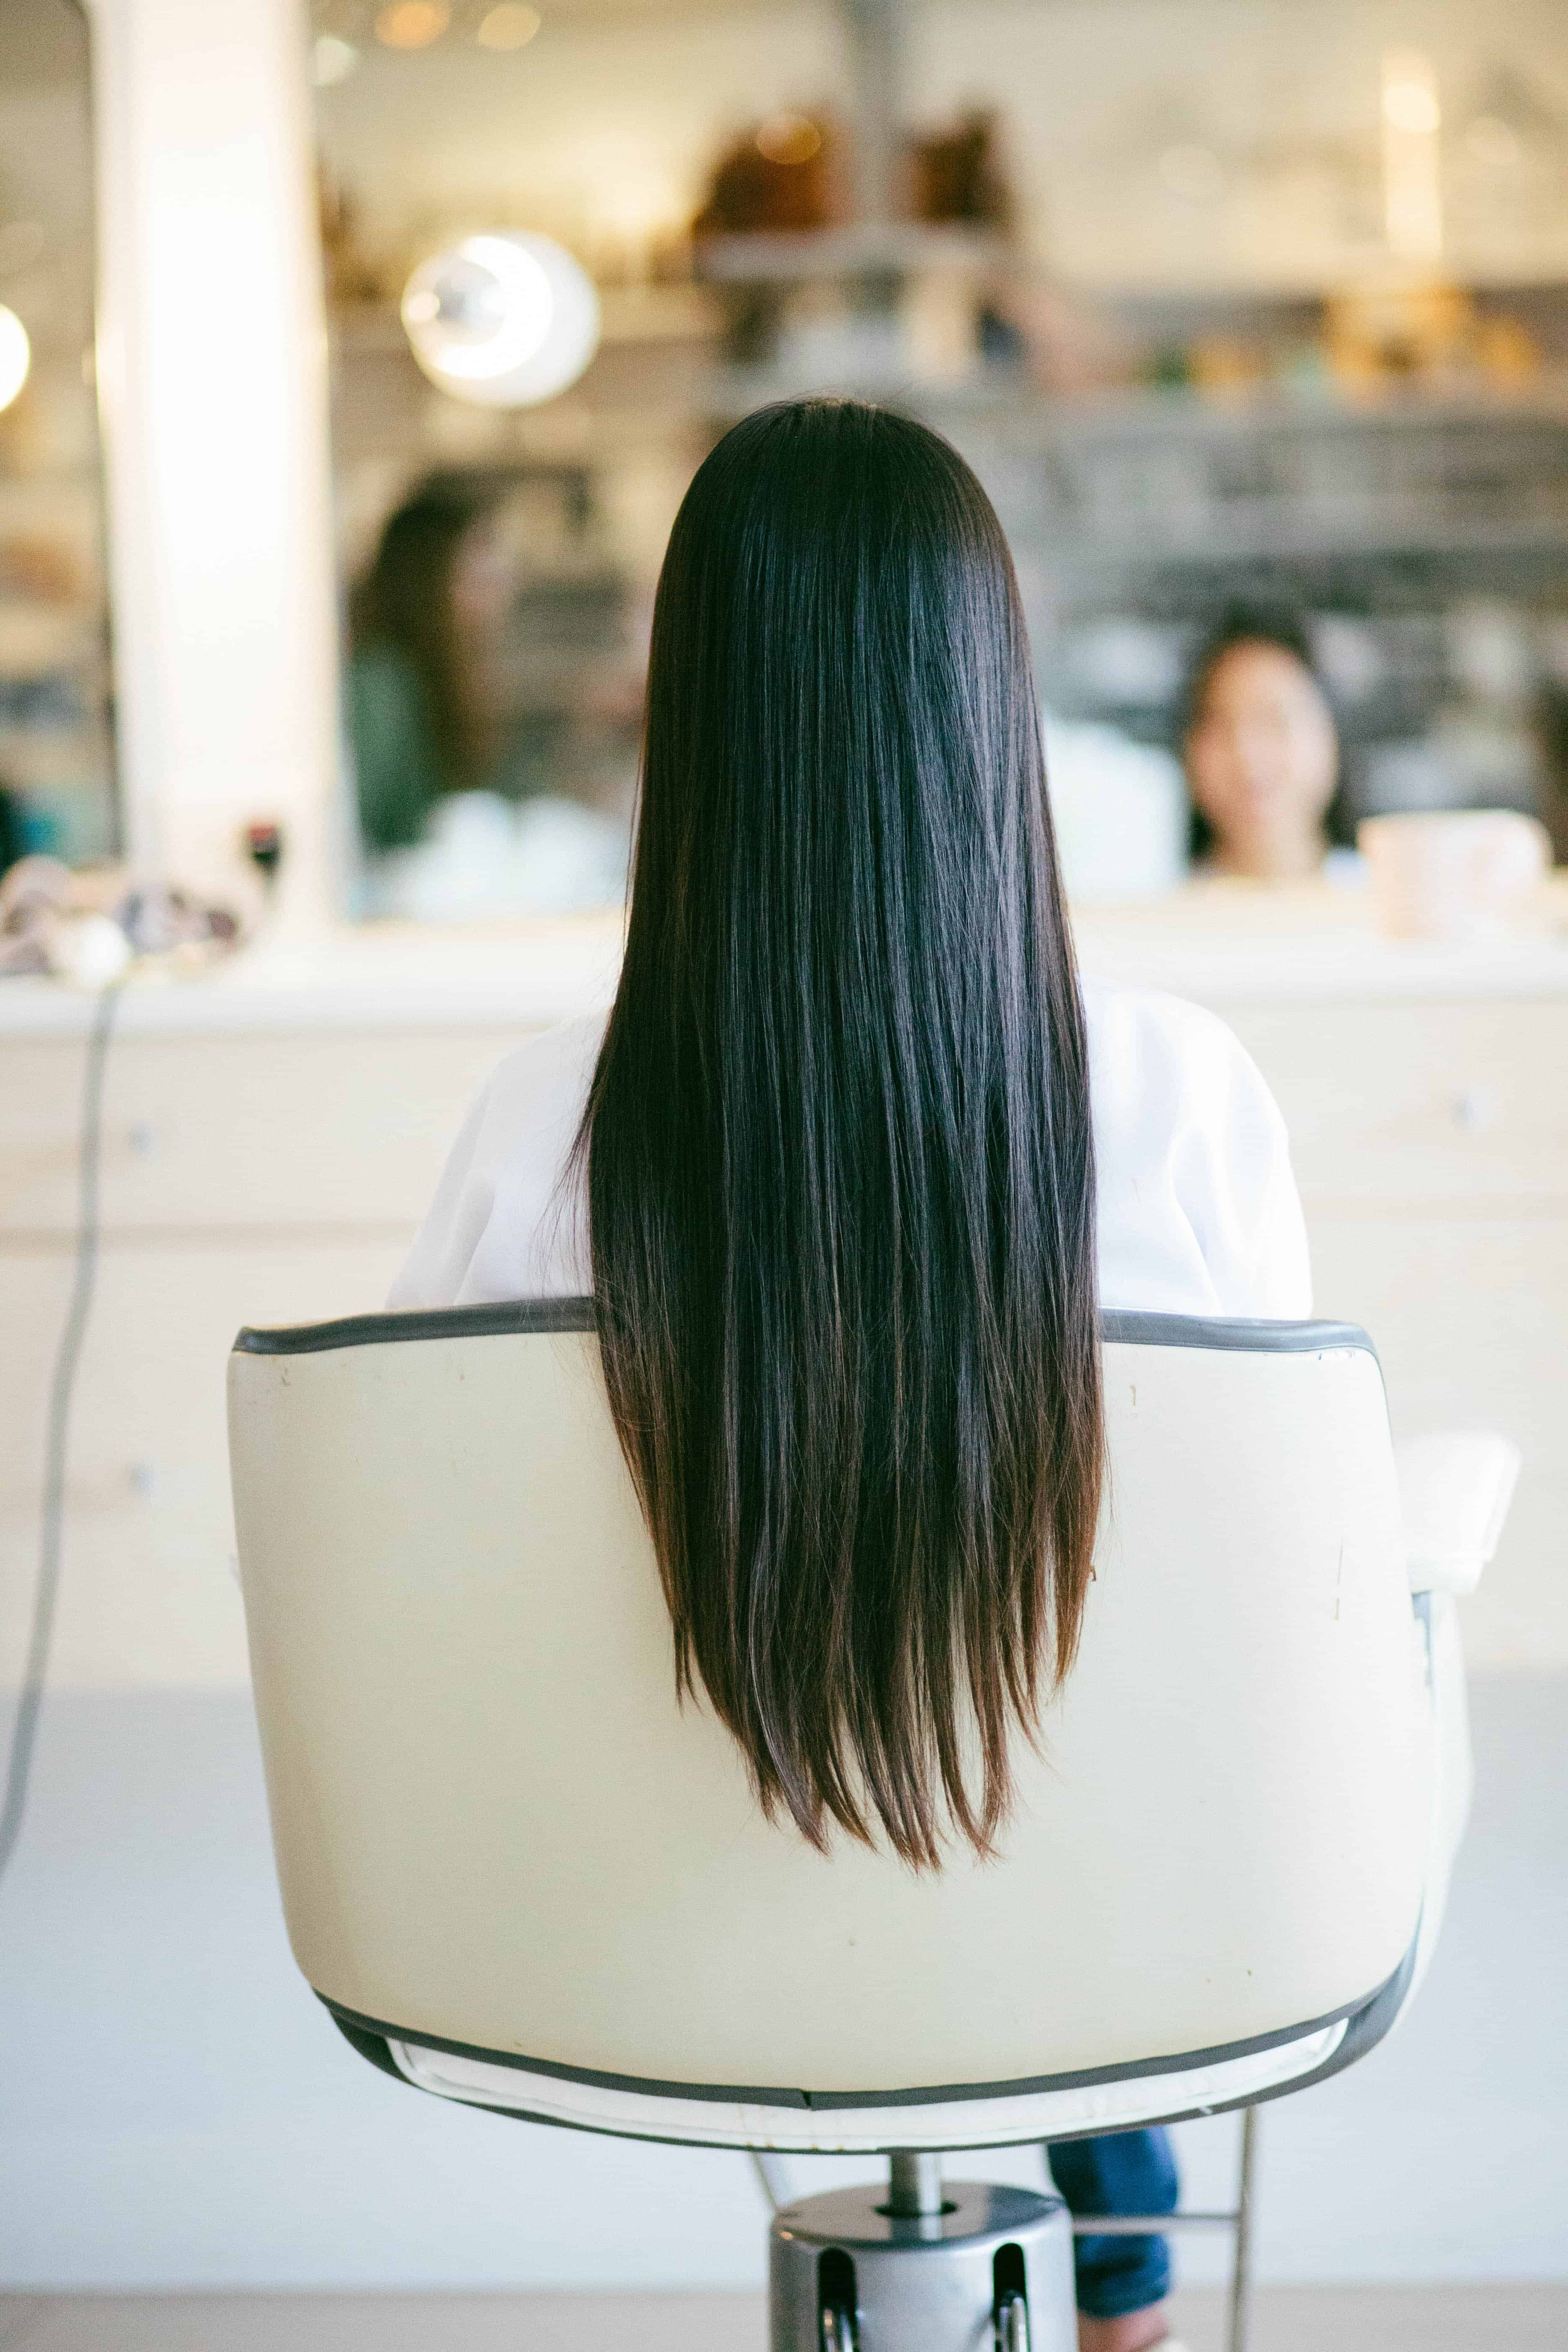 The Lob Haircut  Balayage \u2013 Everything You Need To Know. A Taste of Koko Sabia Apothecary , Long Straight Asian Hair